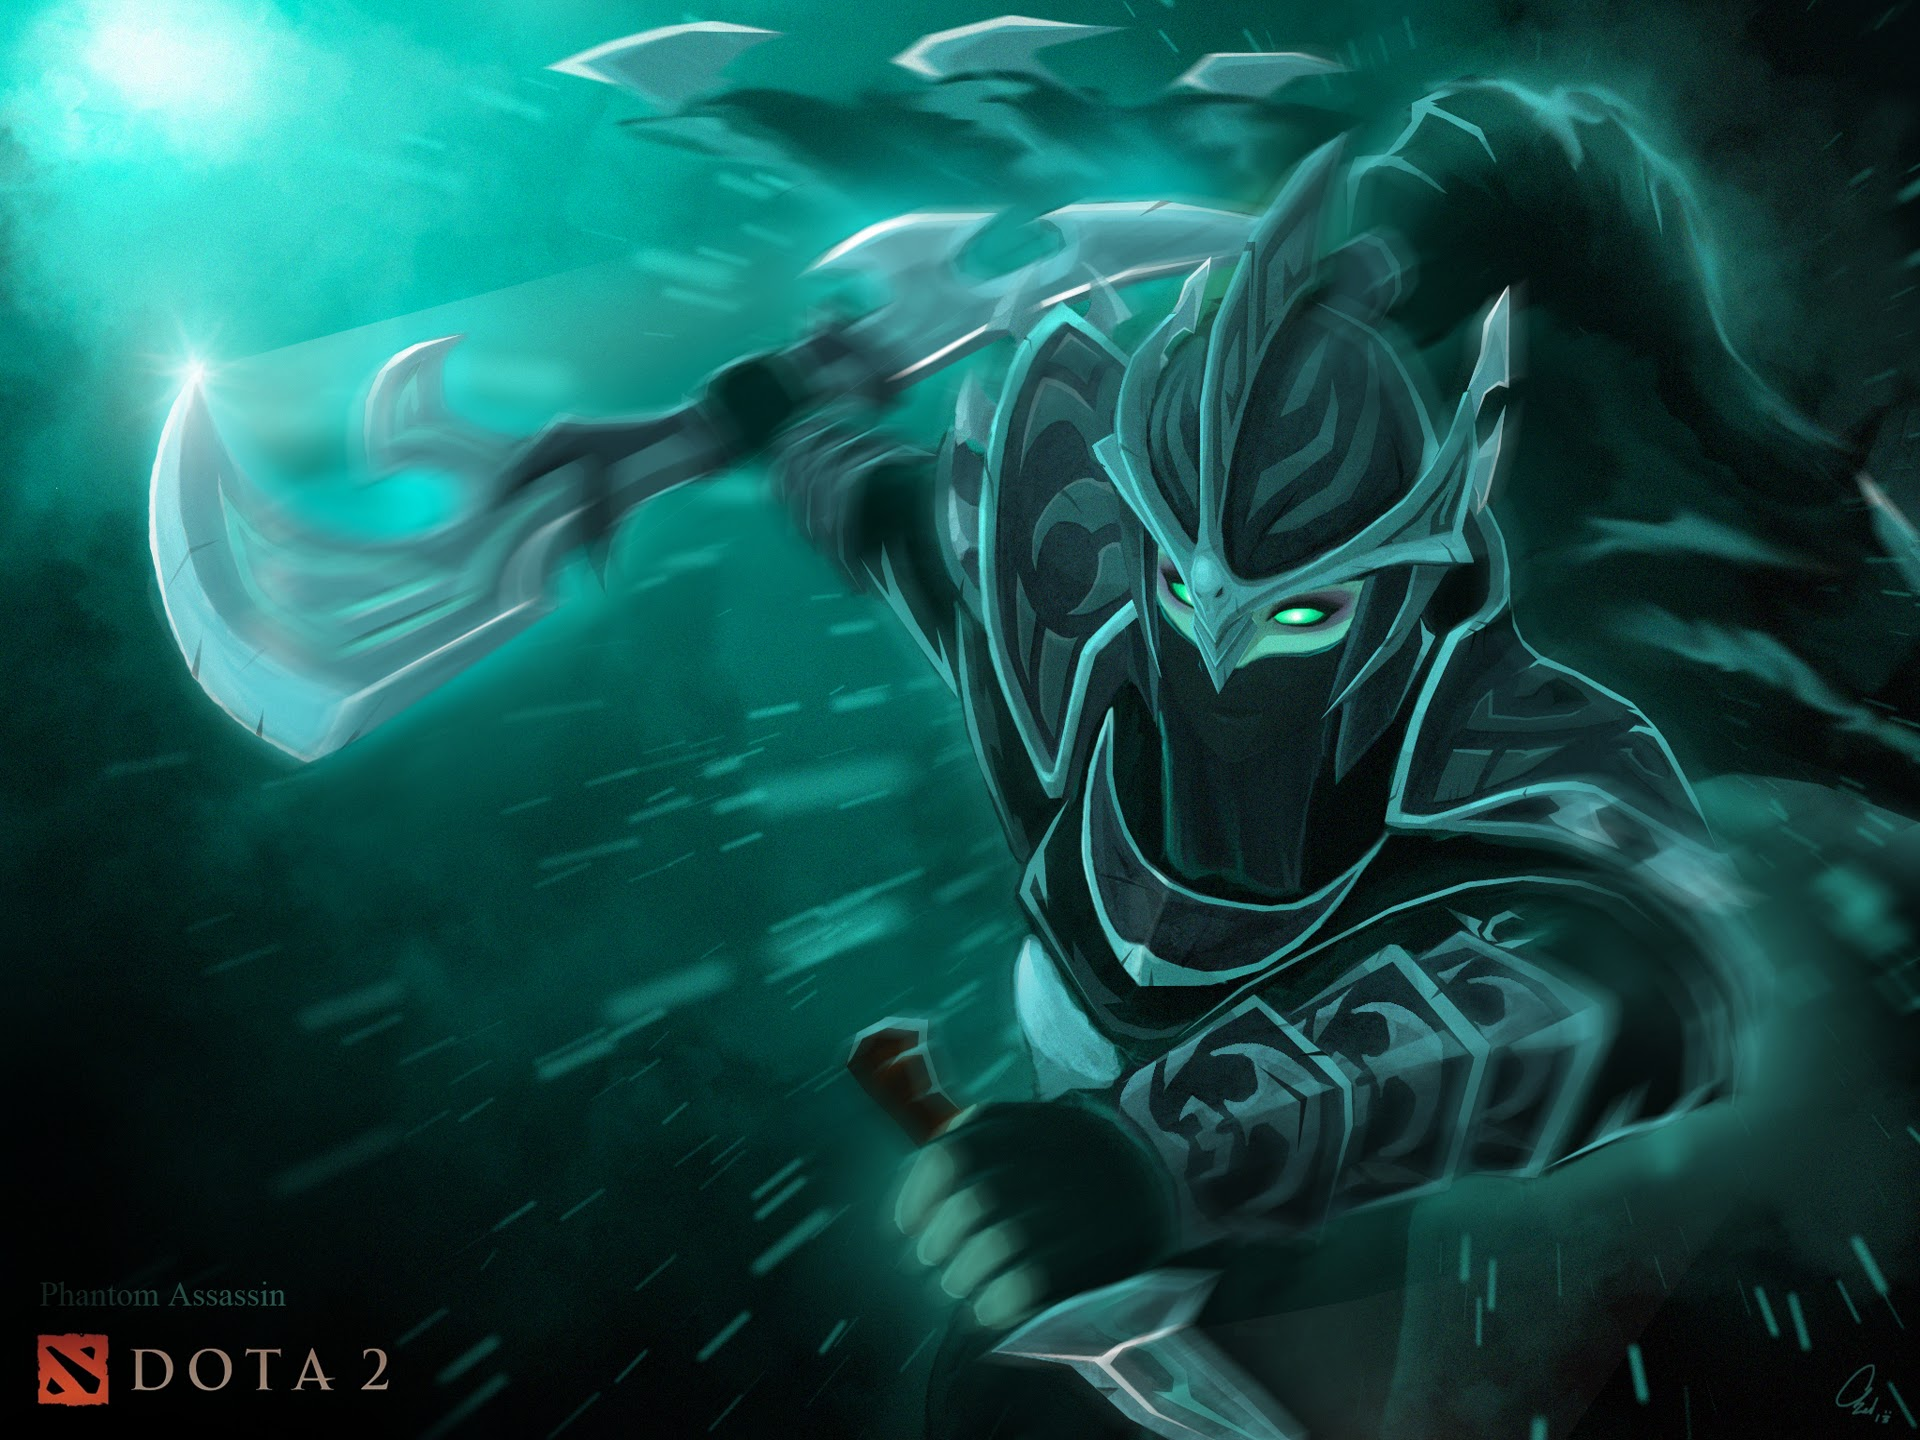 Phantom Assassin DOTA 2 w2 Wallpaper HD